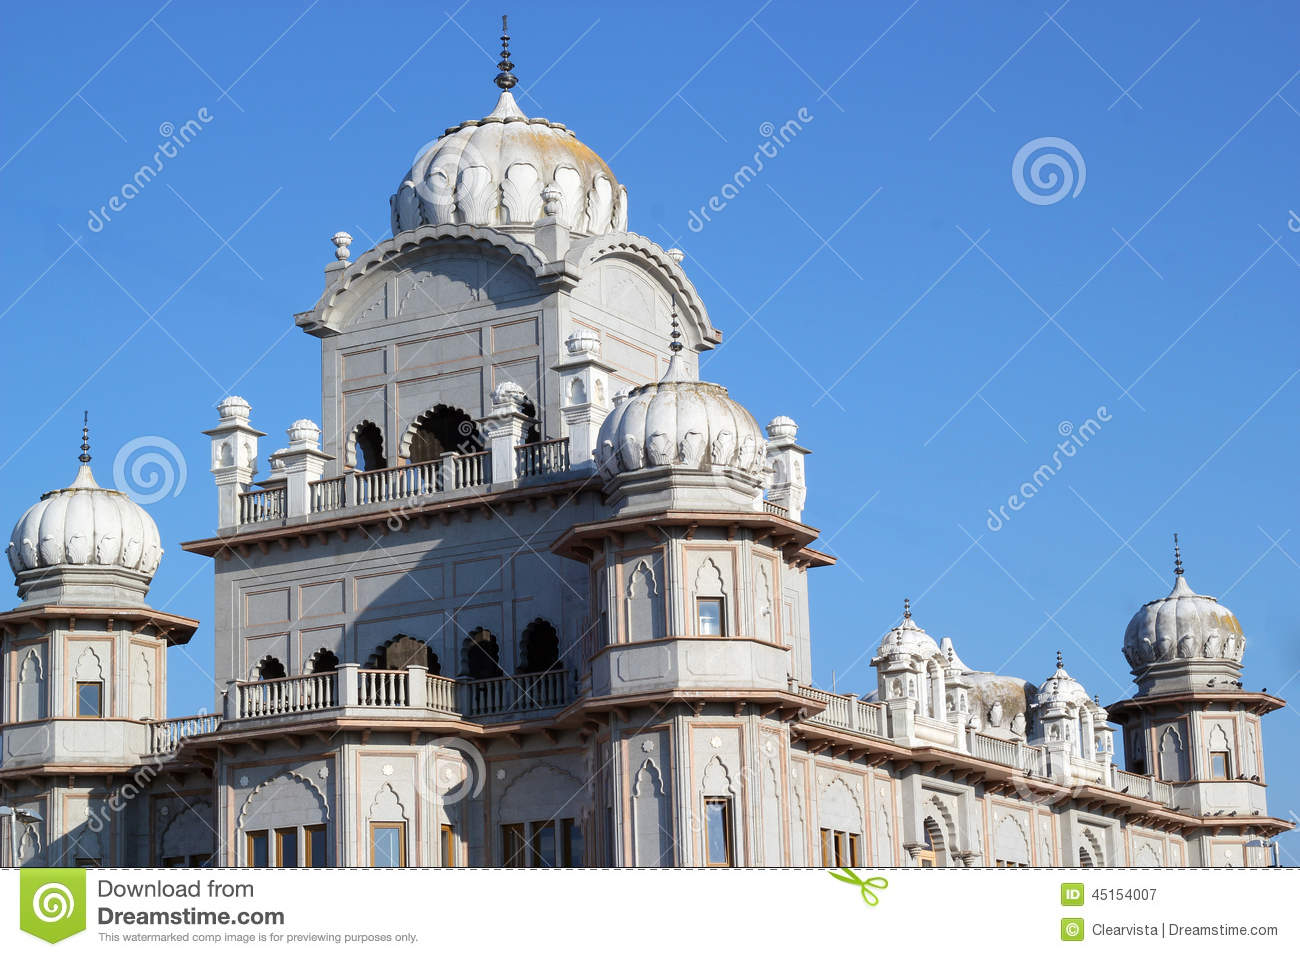 Bedford United Kingdom  city pictures gallery : ... Sikh temple situated in Queens park, Bedford, United Kingdom